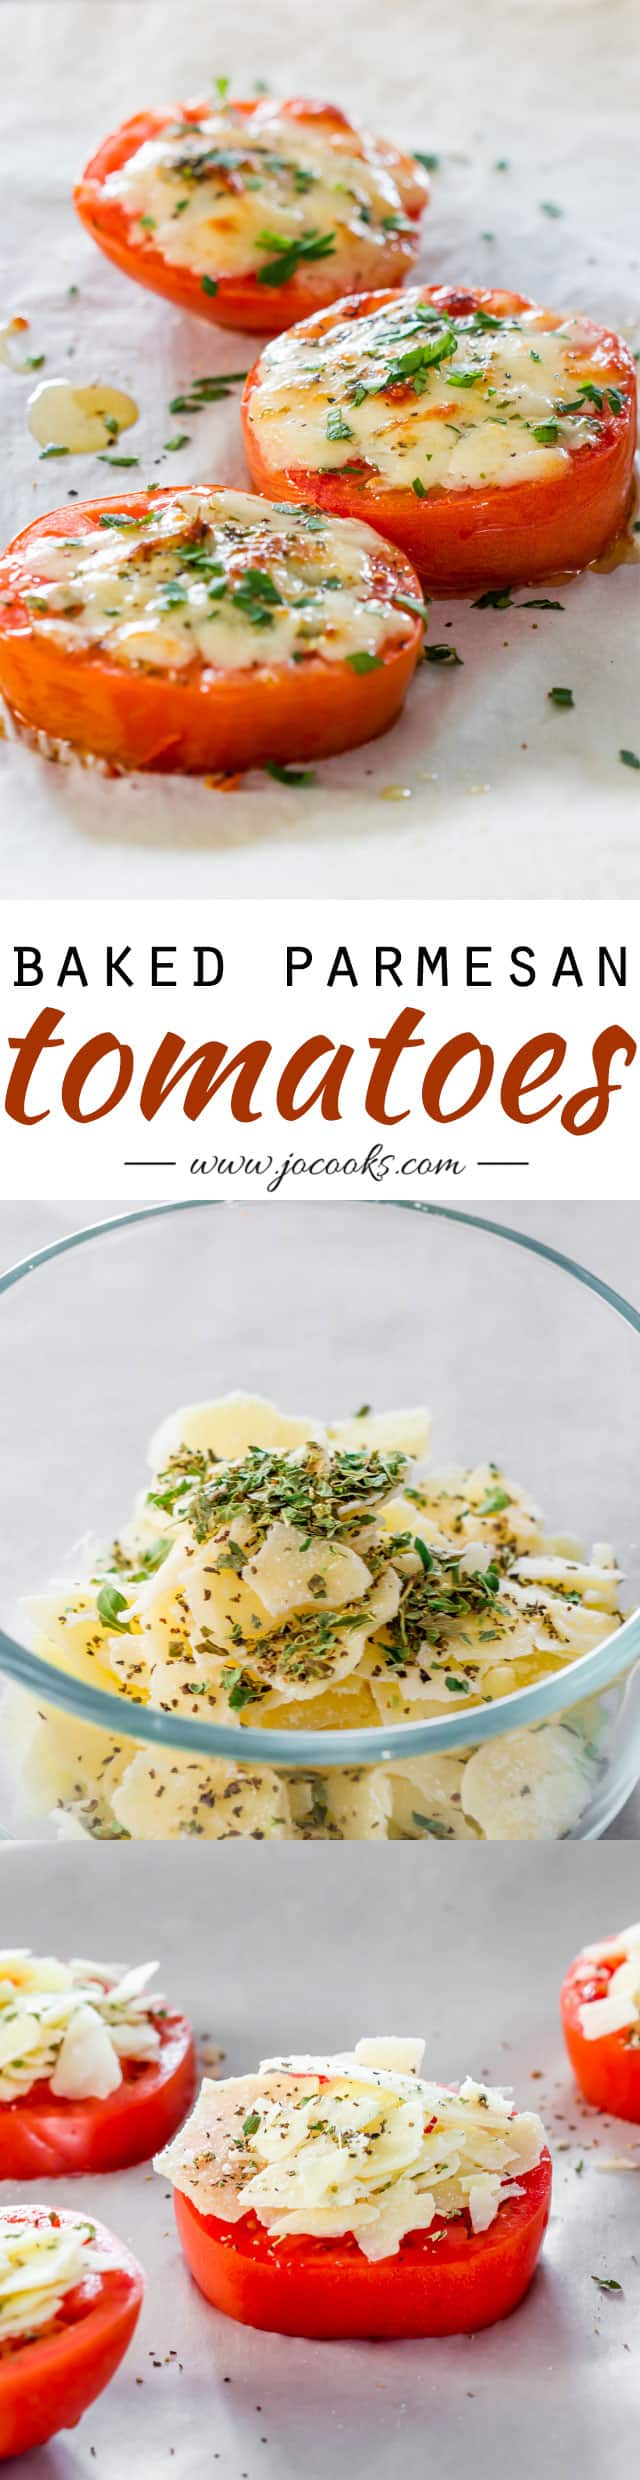 baked-parmesan-tomatoes-collage